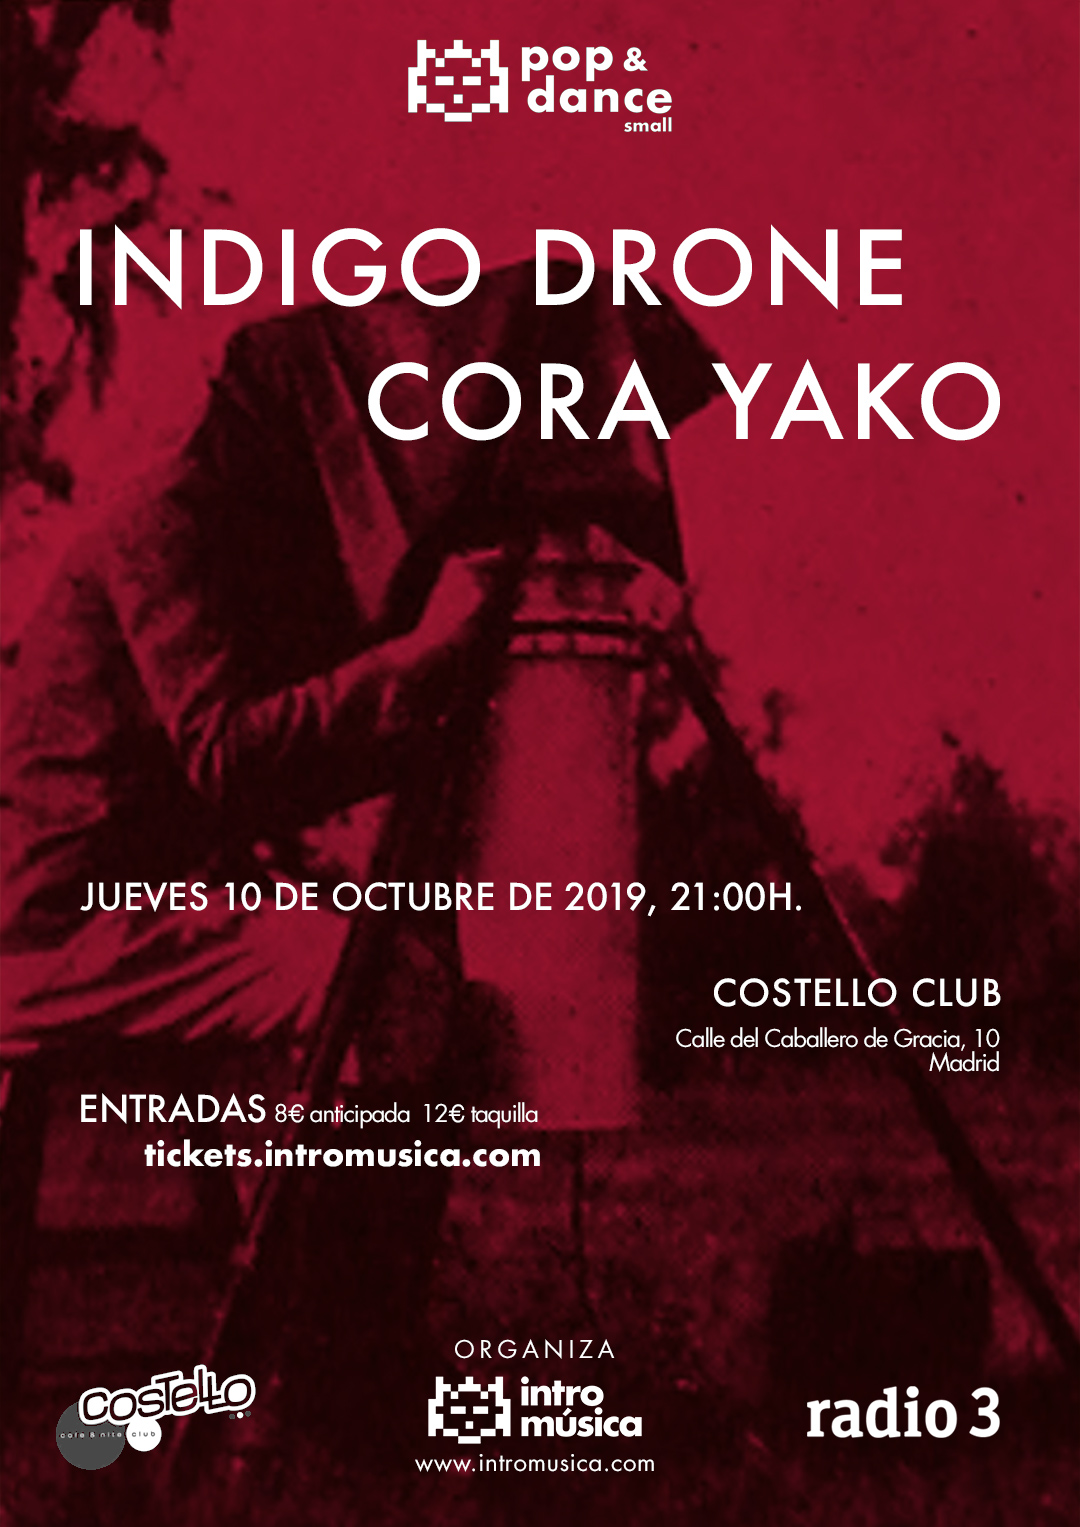 Indigo Drone + Cora Yako en Pop & Dance small